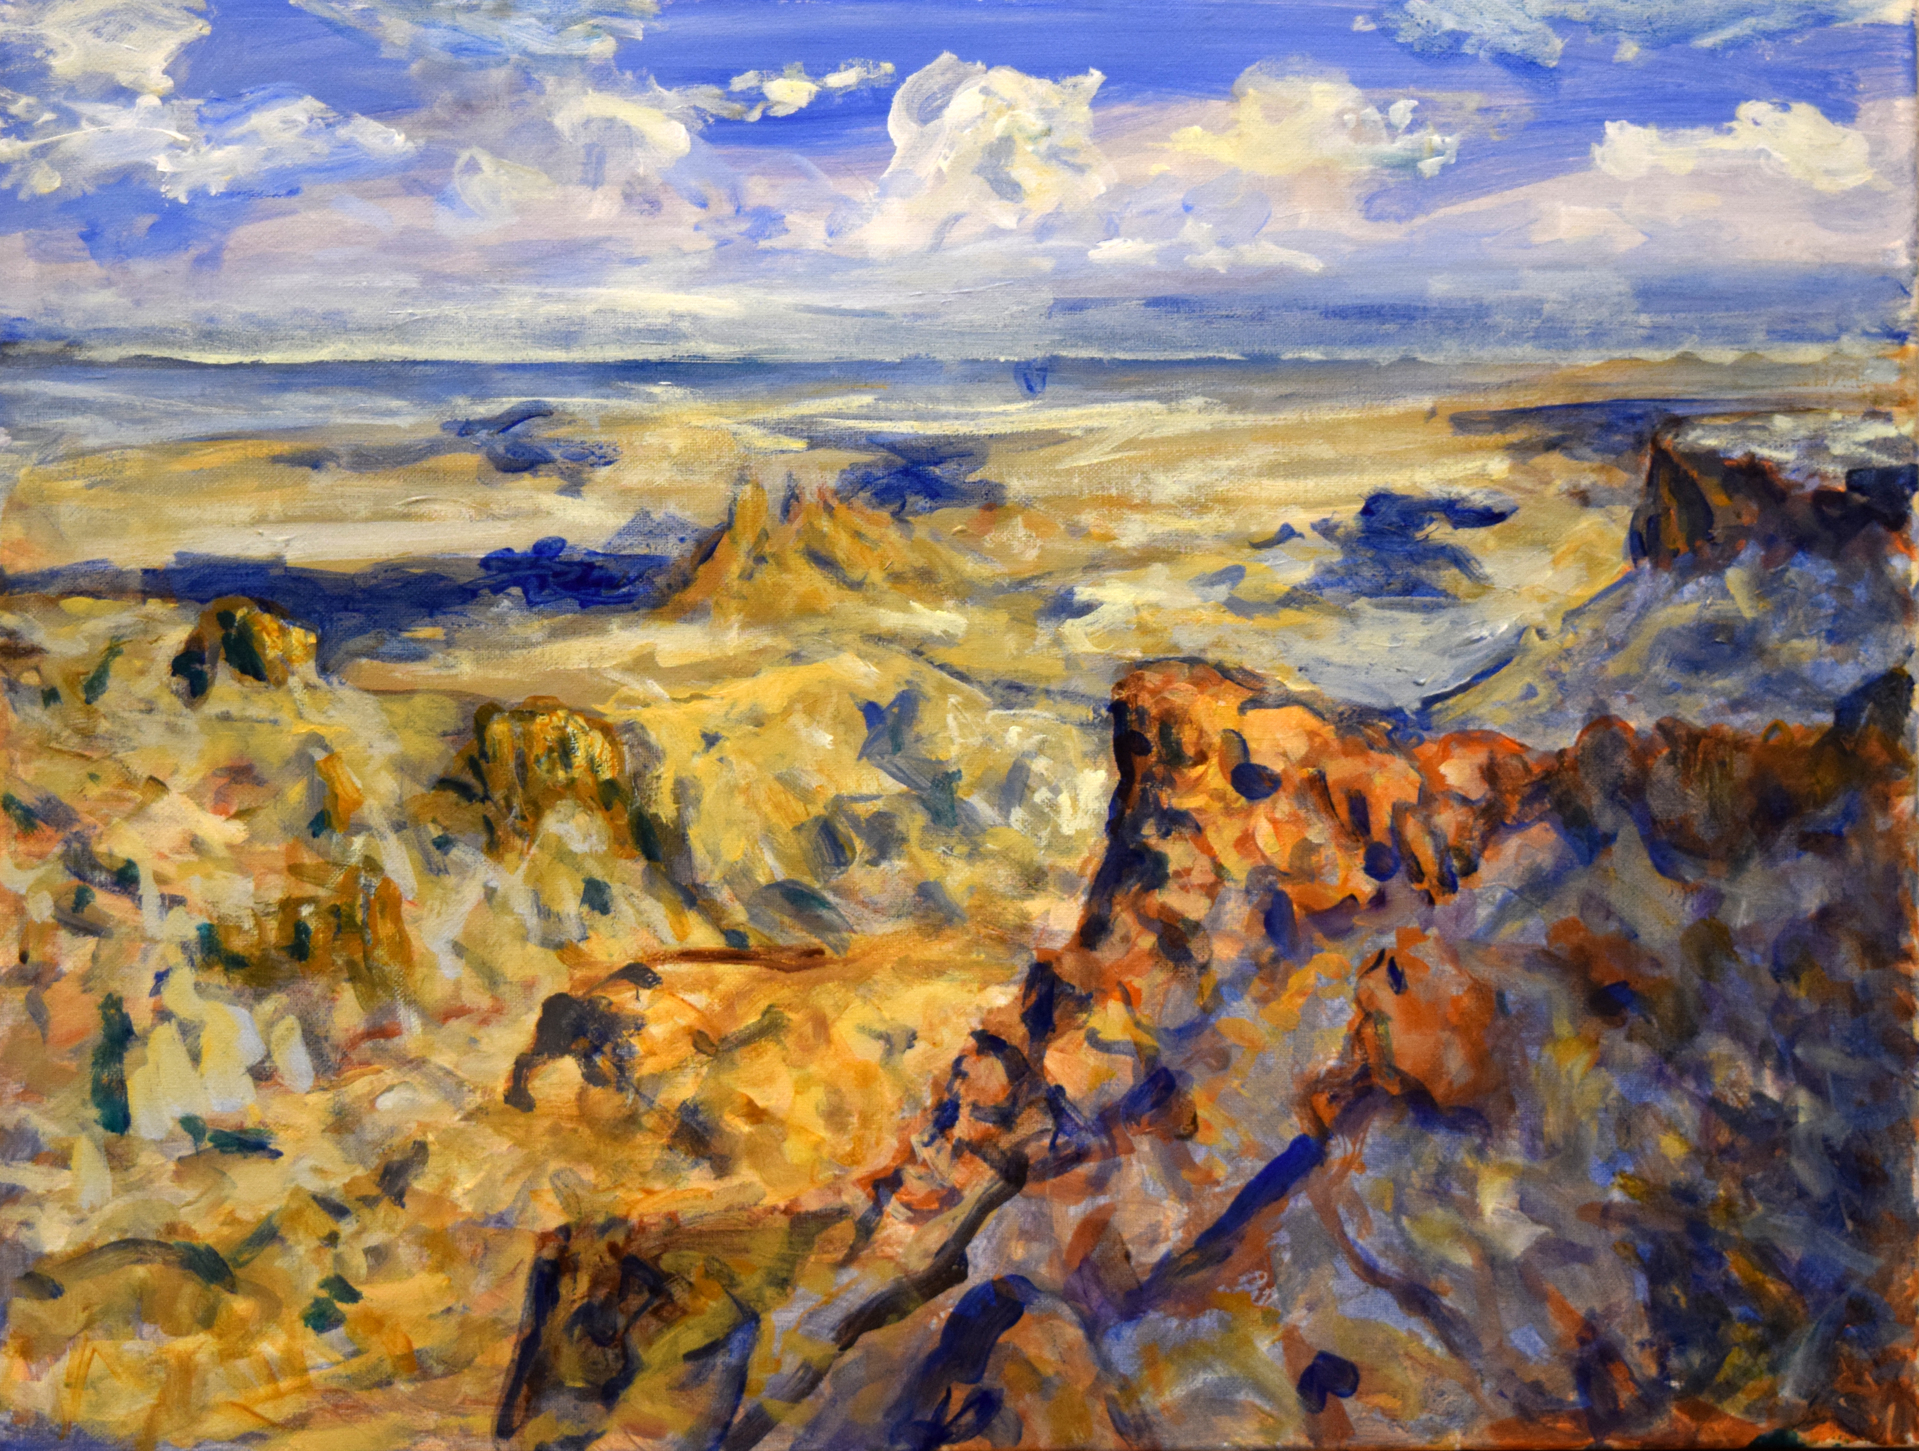 View from the South Rim, Big Bend National Park by Earl Staley